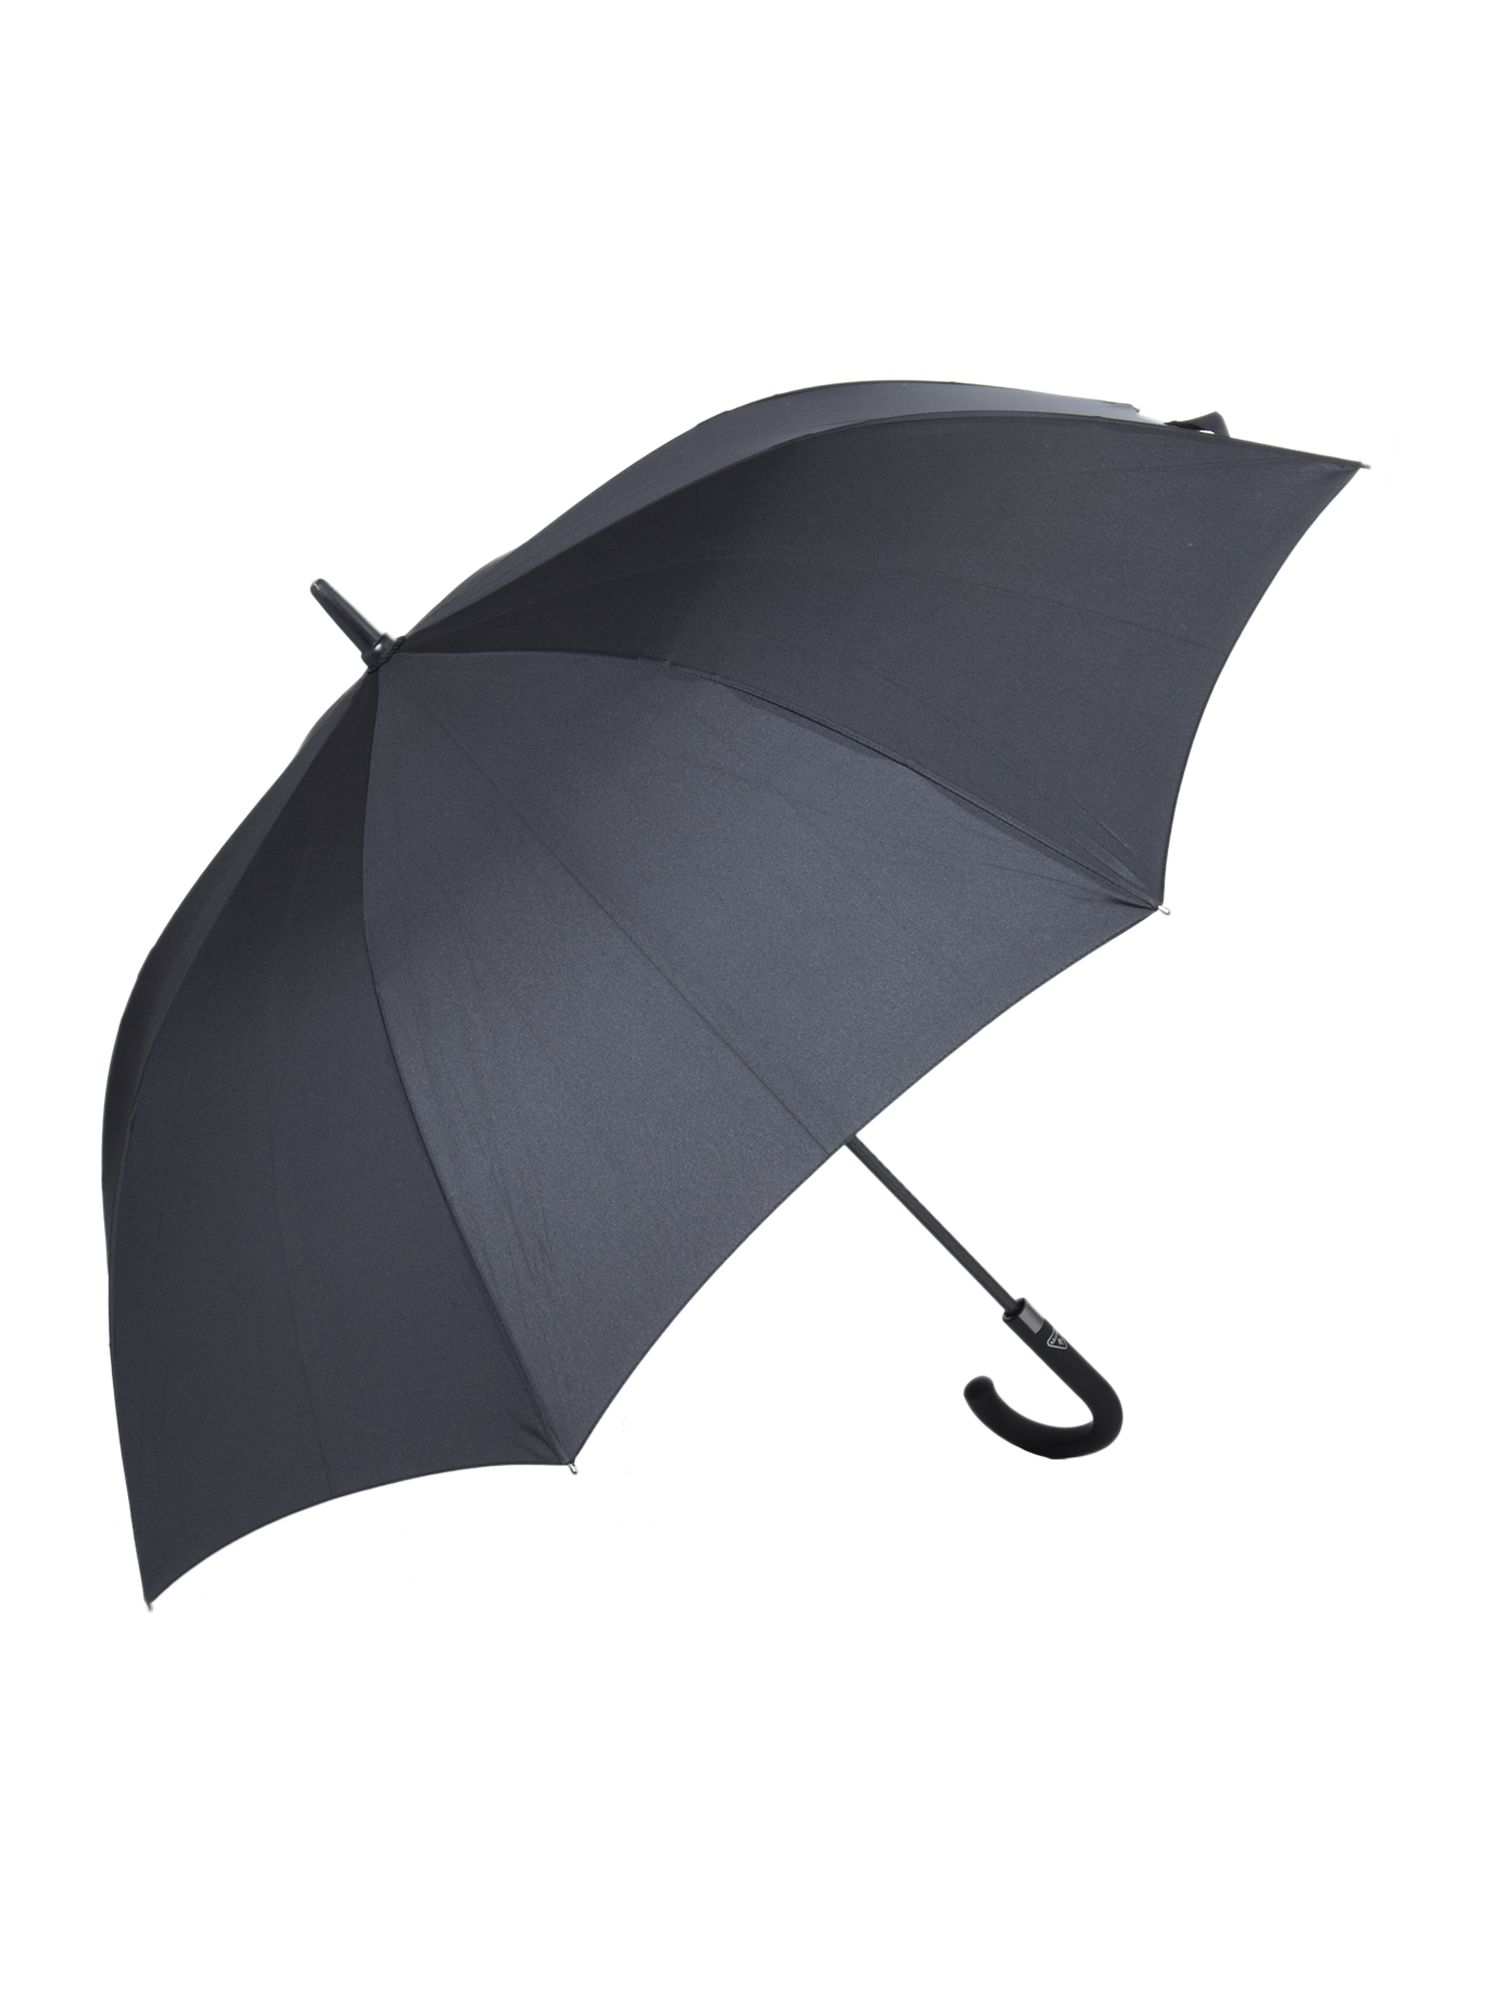 Fulton Knightsbridge umbrella with automatic opening Black